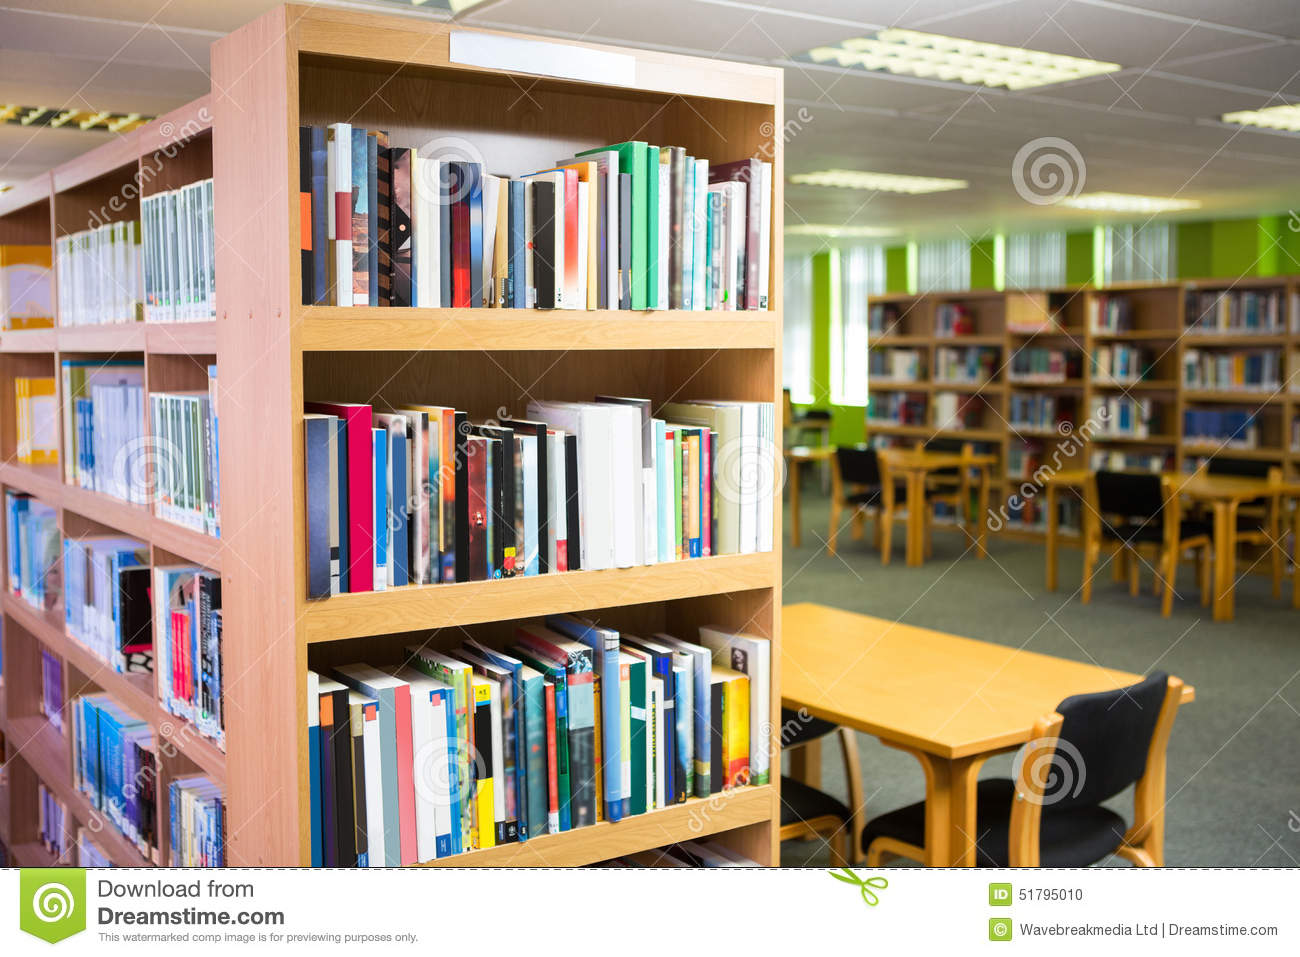 Volumes Of Books On Bookshelf In Library Download Preview